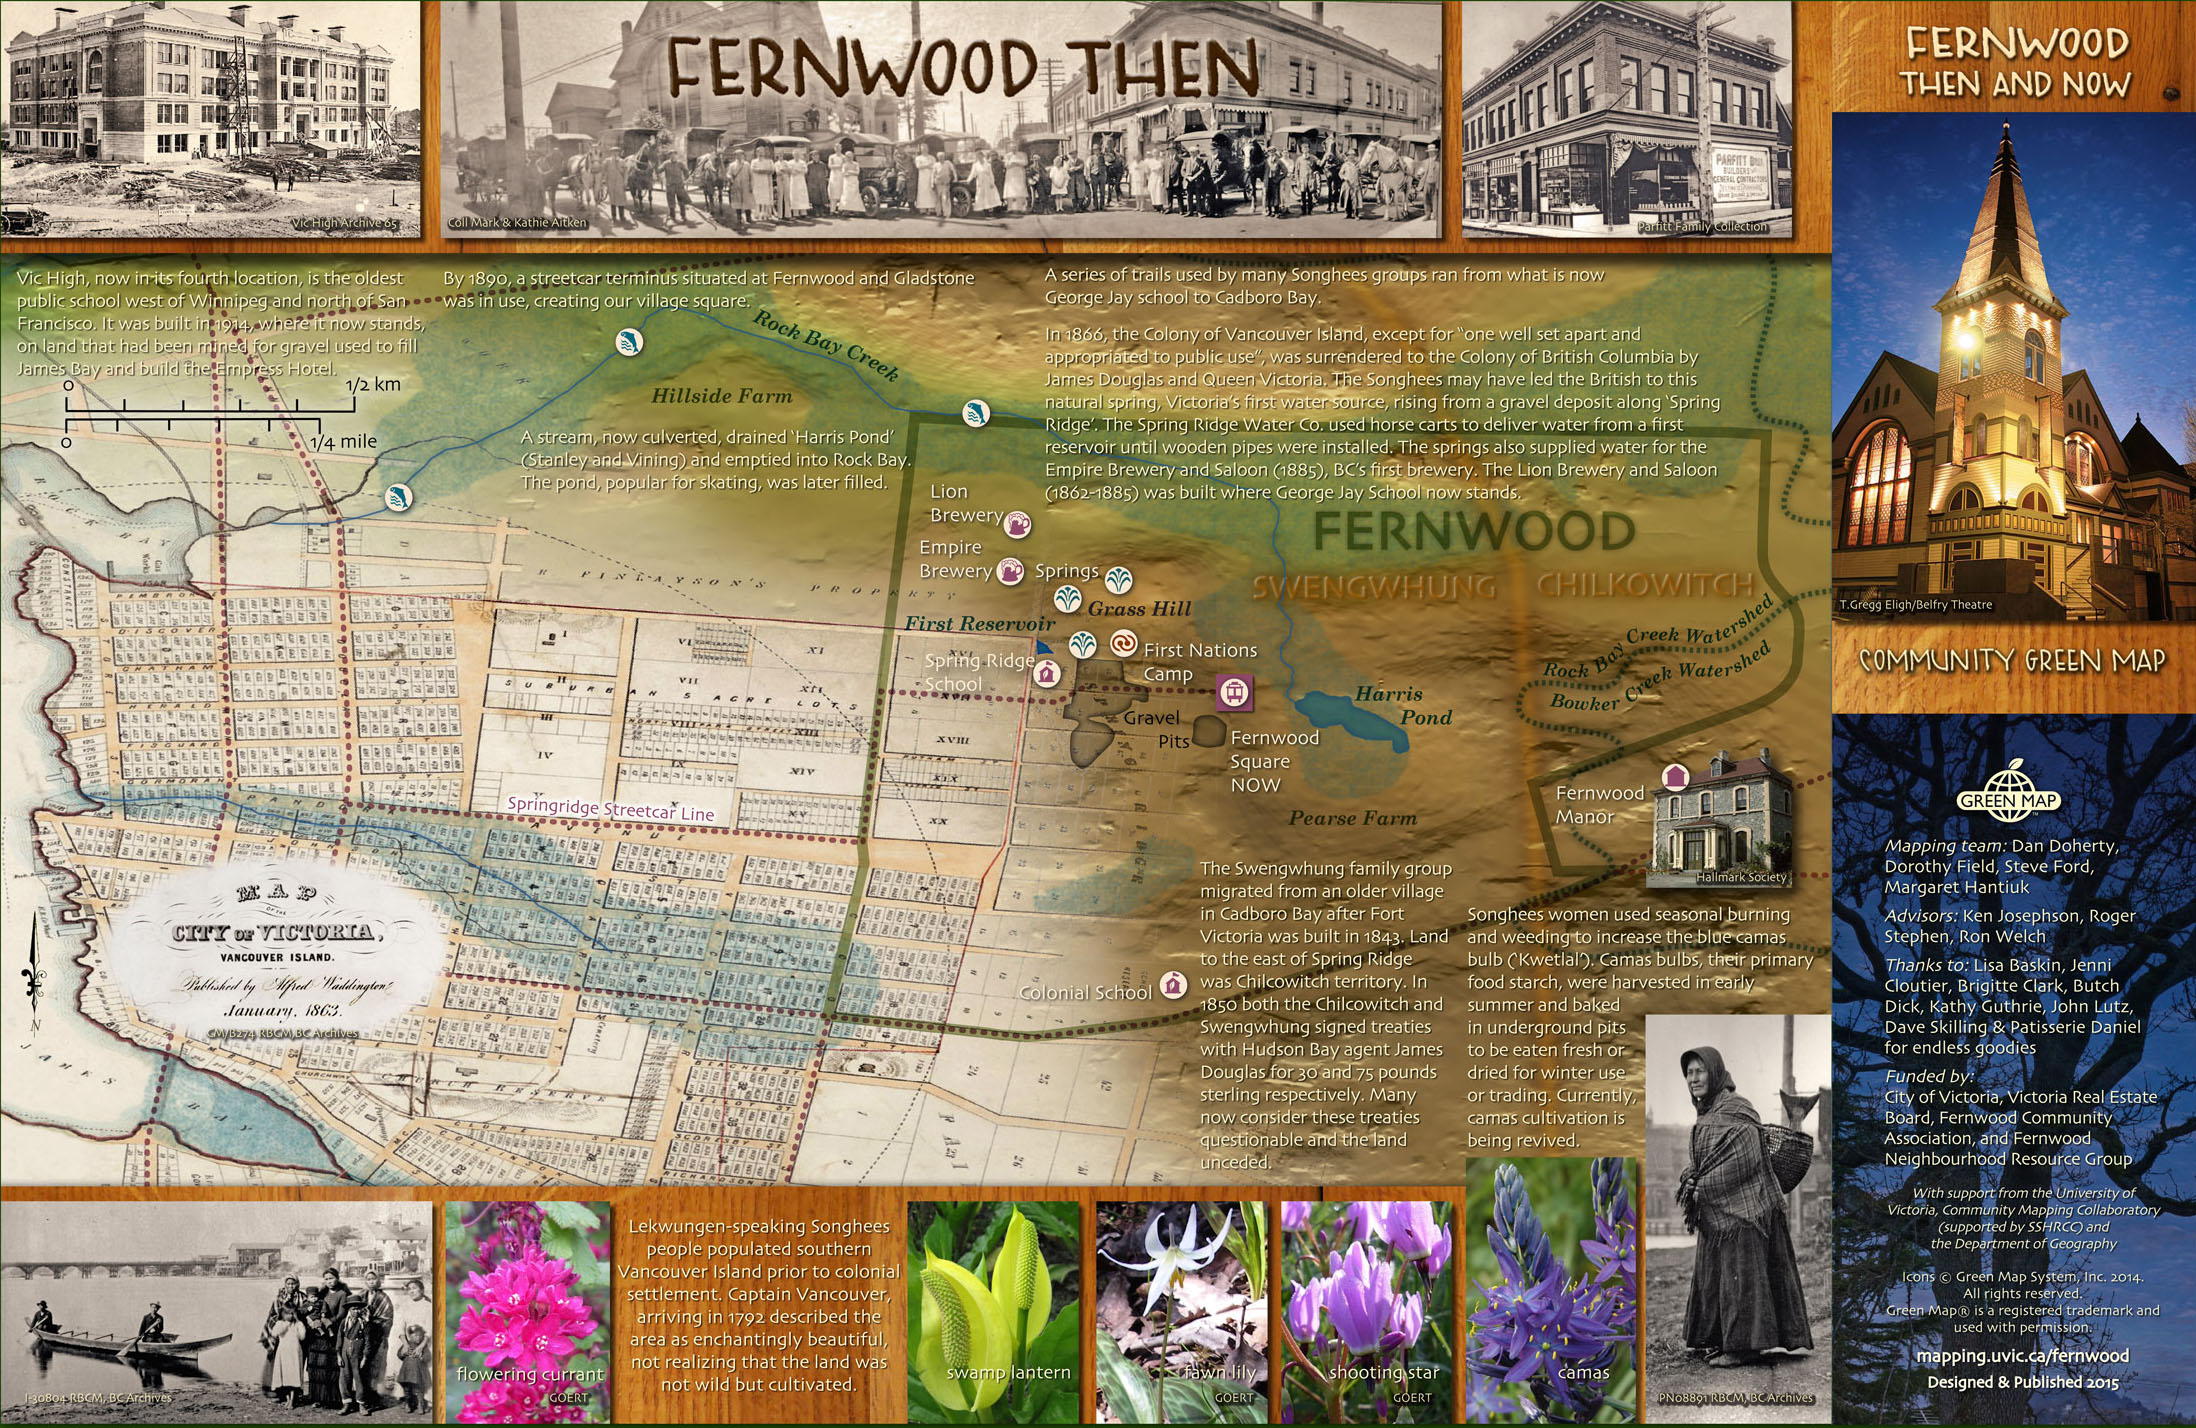 The Fernwood neighbourhood community green map then side